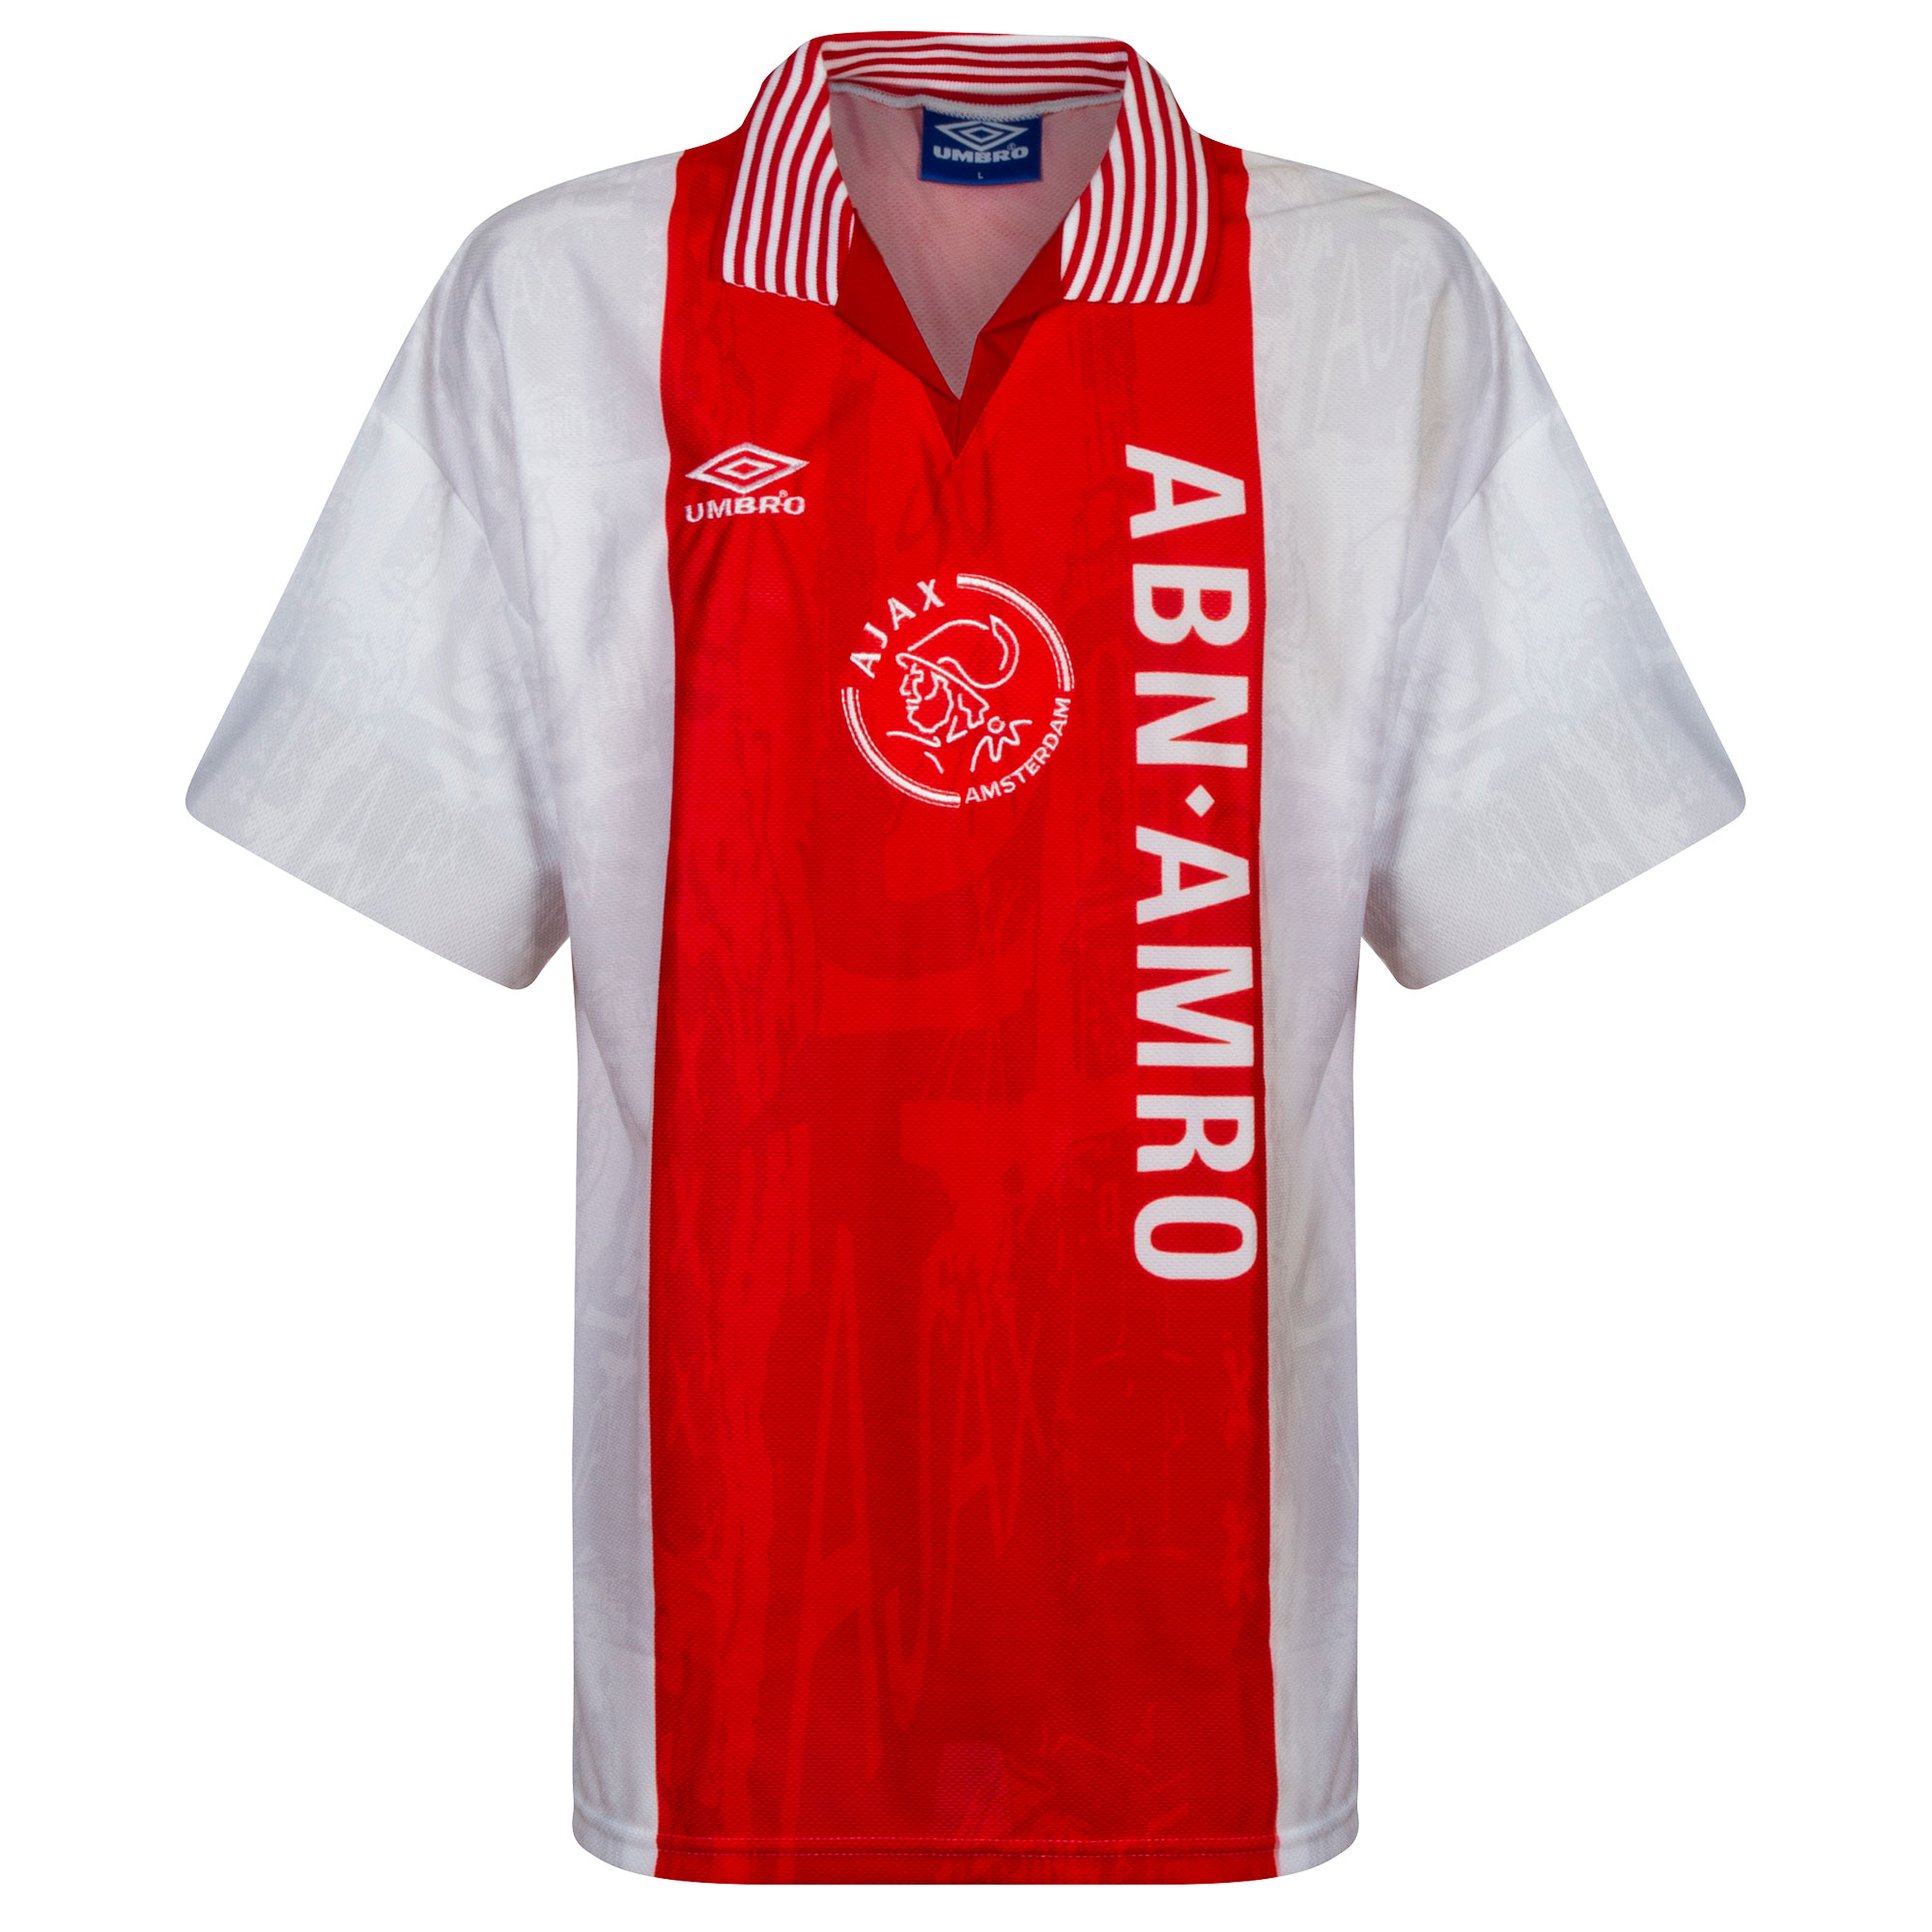 Umbro Ajax Home 1994-1995 Shirt - USED Condition (Good) Size -